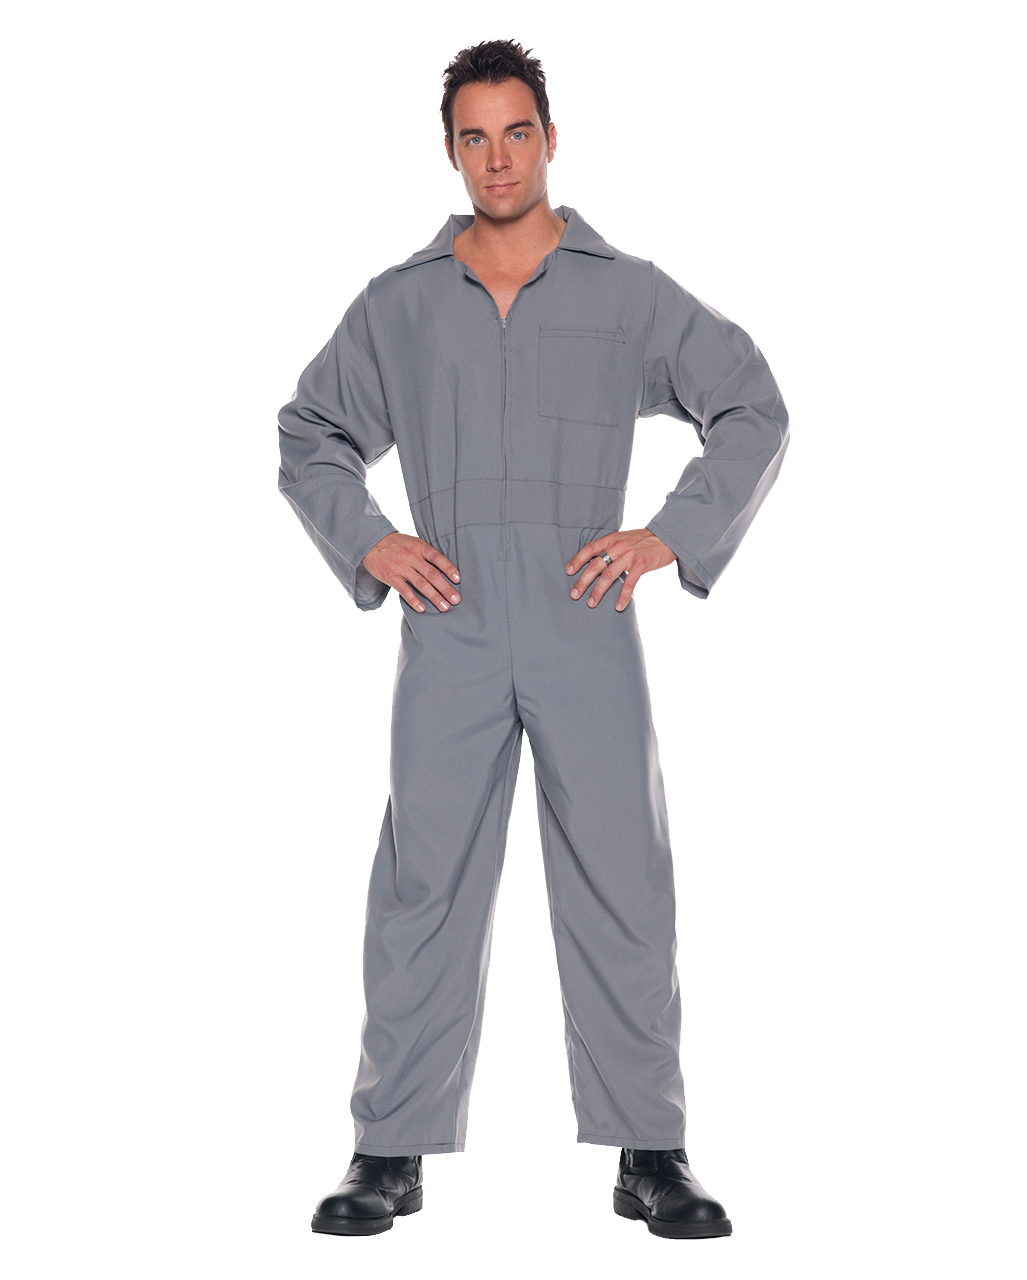 Adult gray jumpsuit | Grey Adult Junmpsuit | horror-shop.com